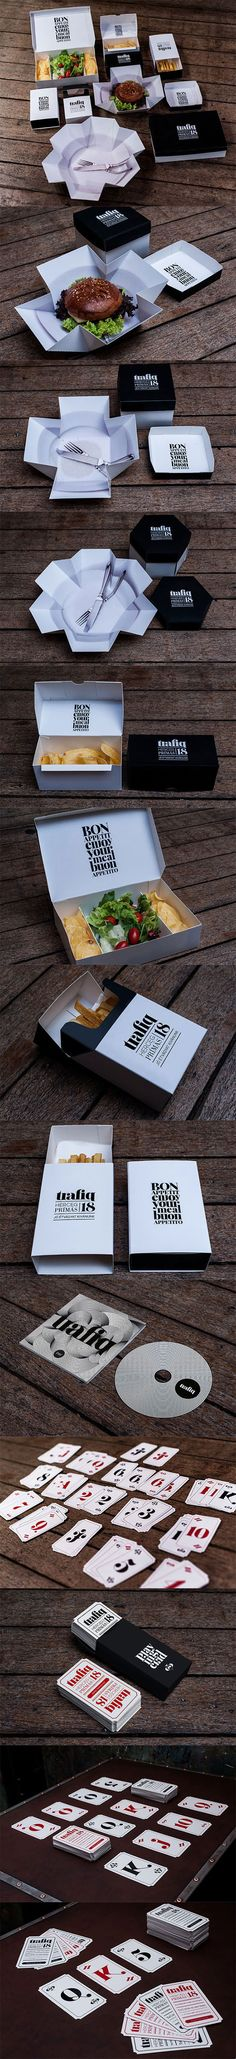 New design packaging food restaurant branding Ideas Cool Packaging, Food Packaging Design, Packaging Design Inspiration, Brand Packaging, Innovative Packaging, Food Branding, Restaurant Branding, Restaurant Design, Branding Design